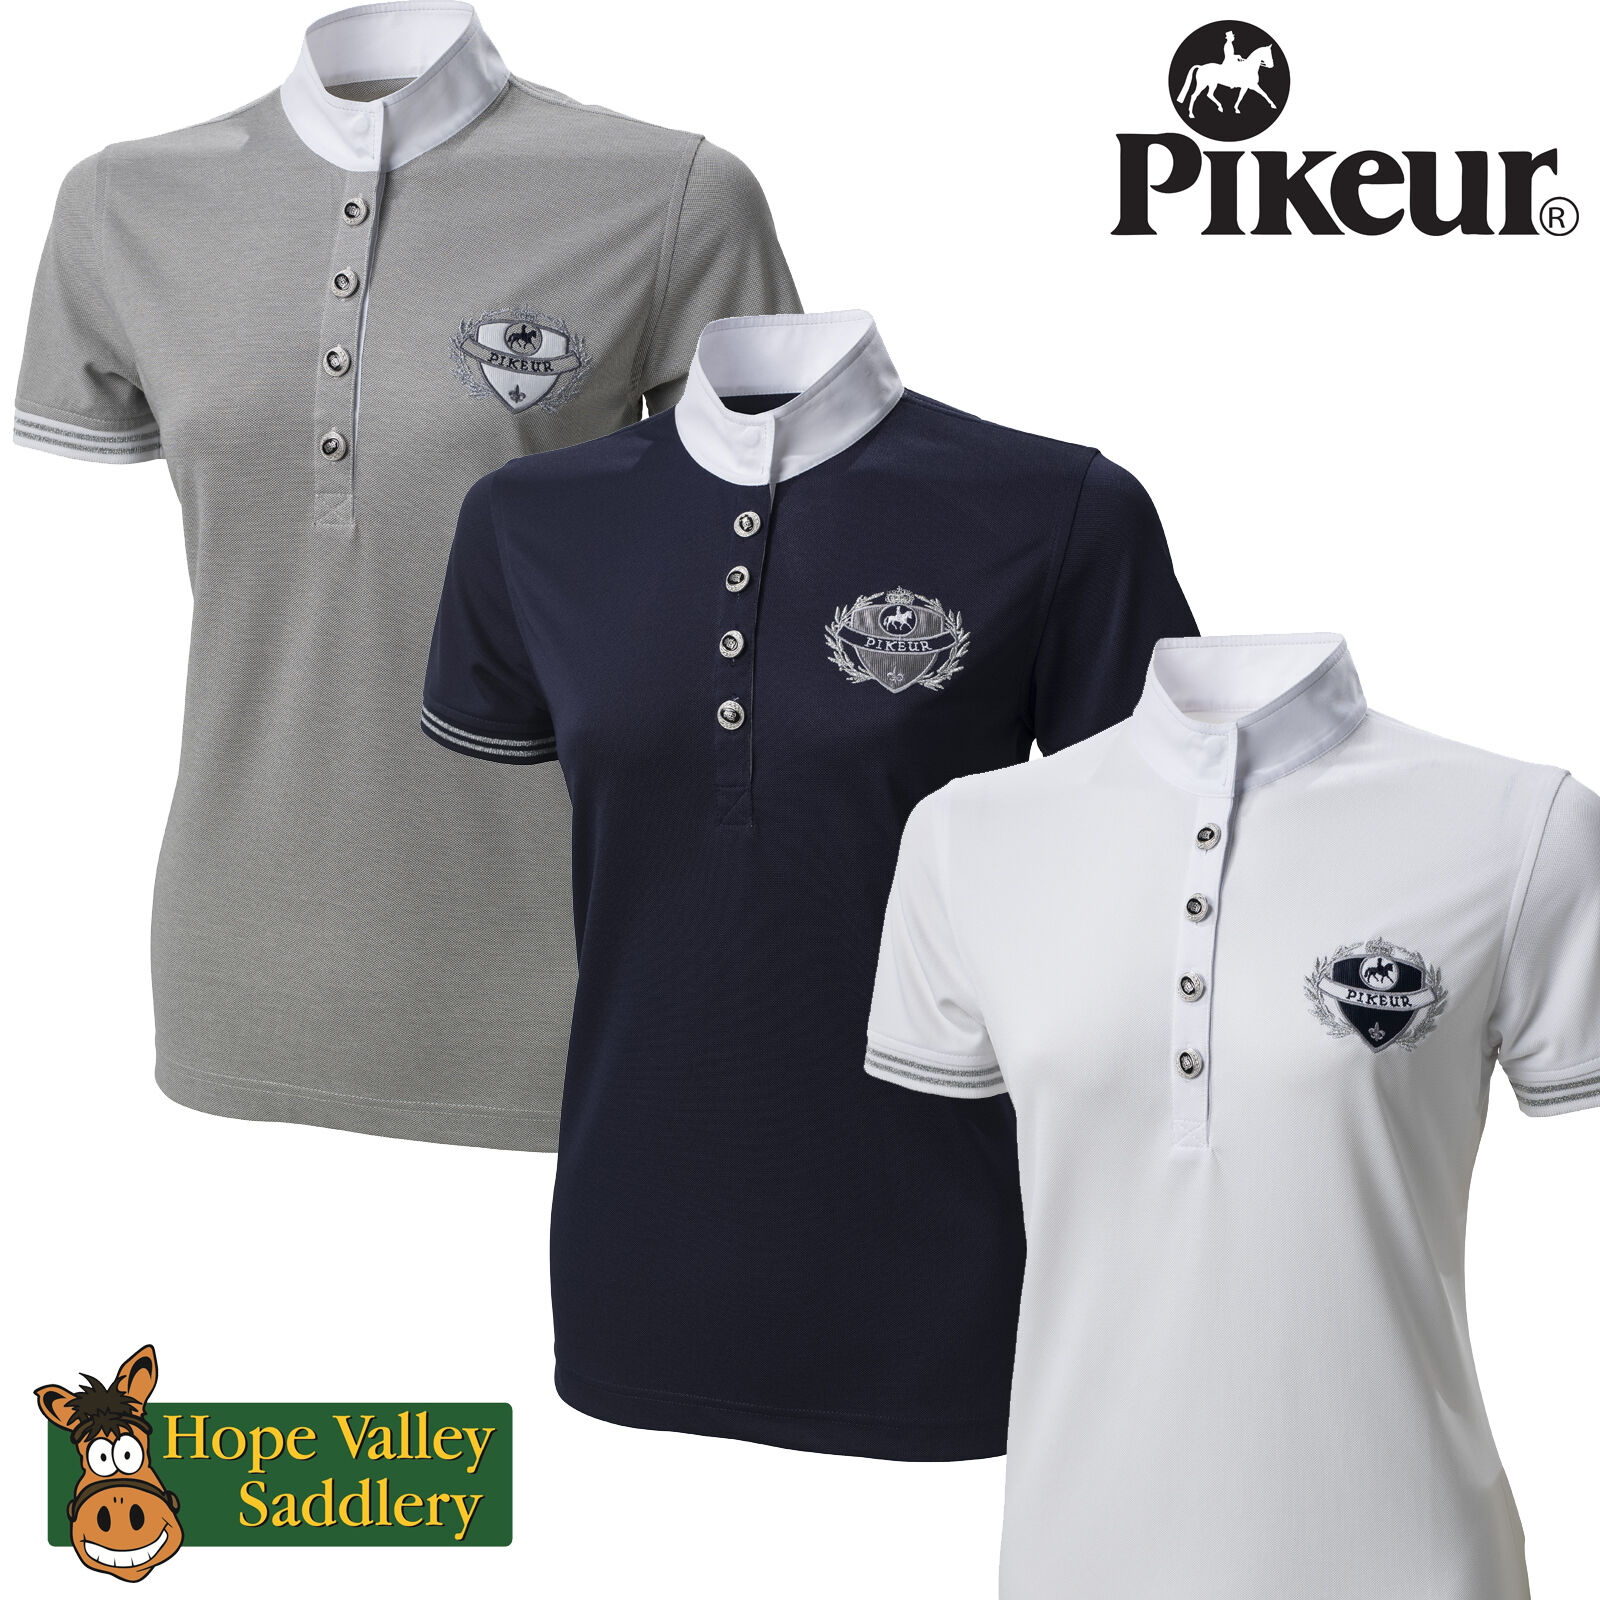 Pikeur Ladies Competition Shirt (499) BNWT